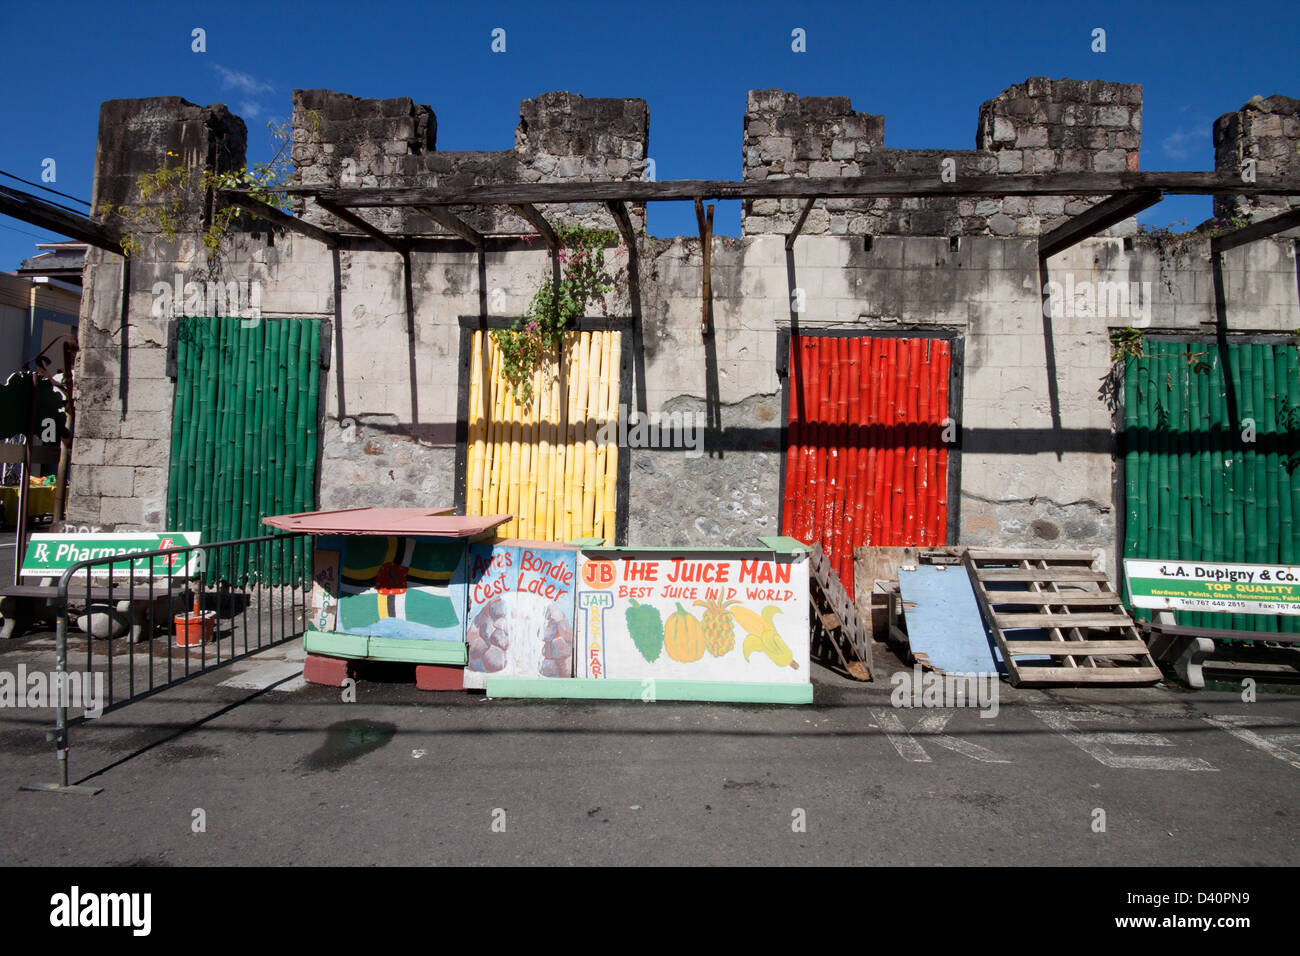 Colorful derelict building in Rosseau, Dominica - Stock Image